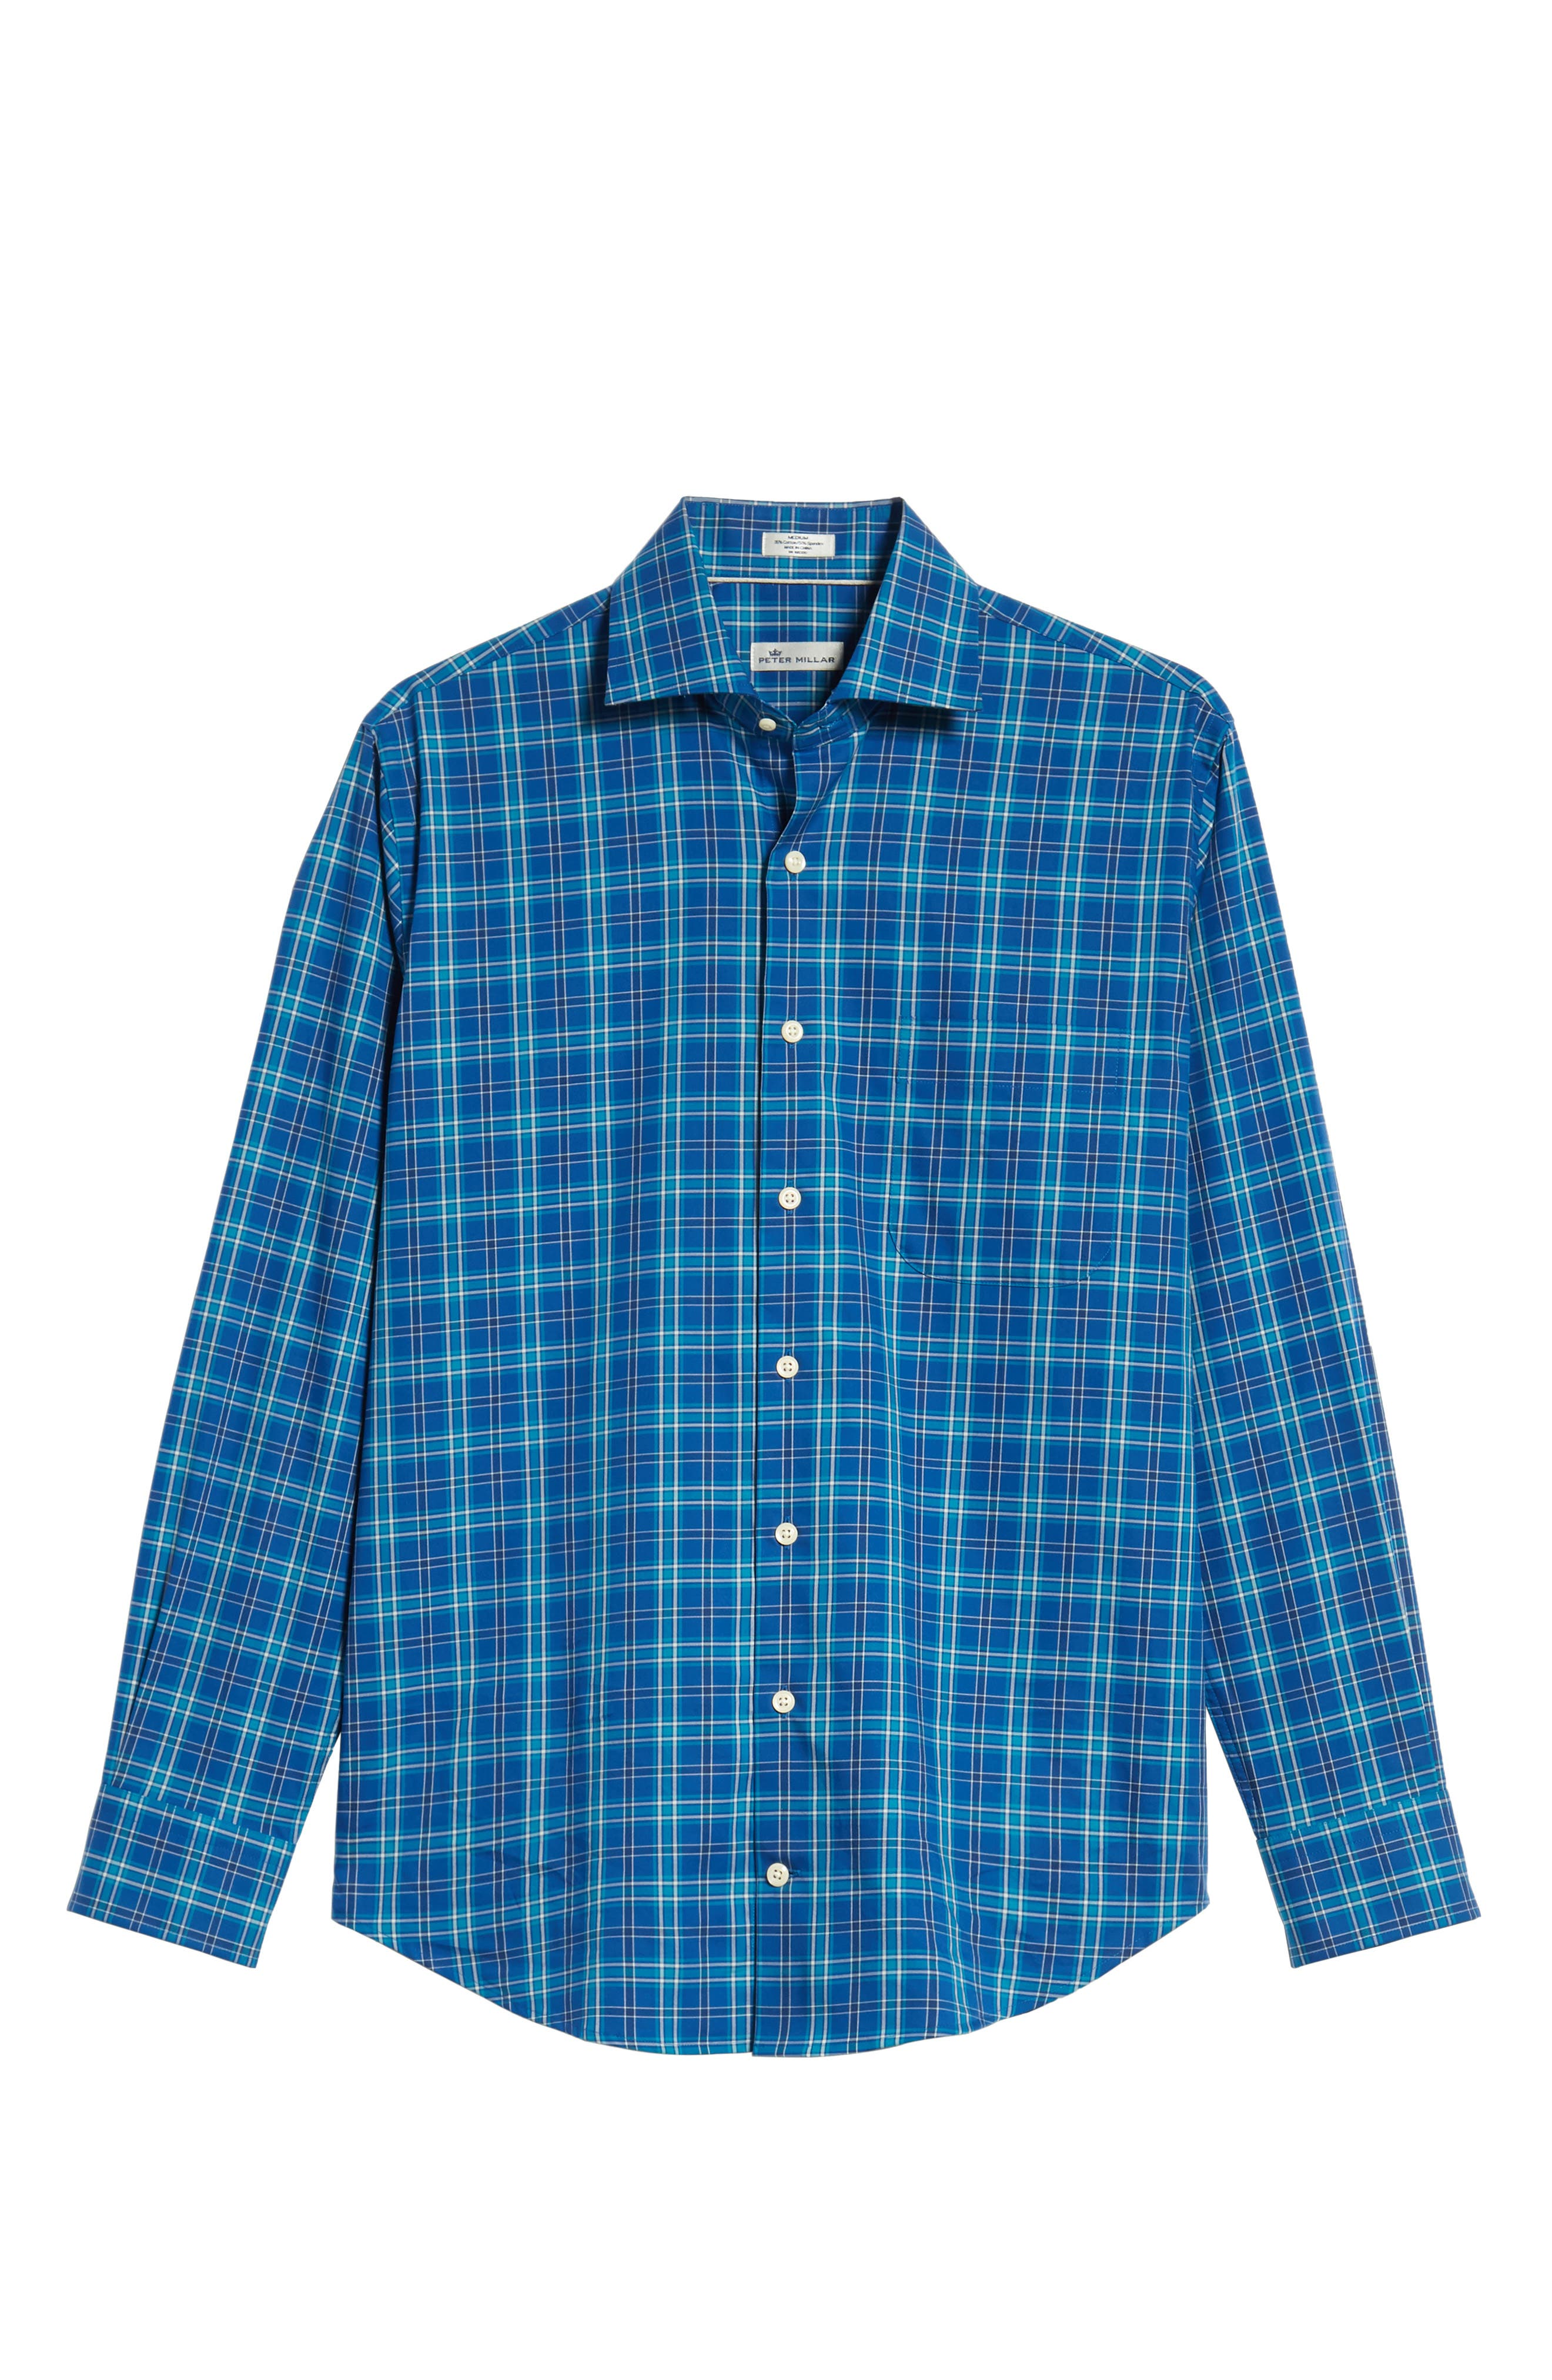 Crown Ease Salamanca Regular Fit Plaid Sport Shirt,                             Alternate thumbnail 5, color,                             BLUE